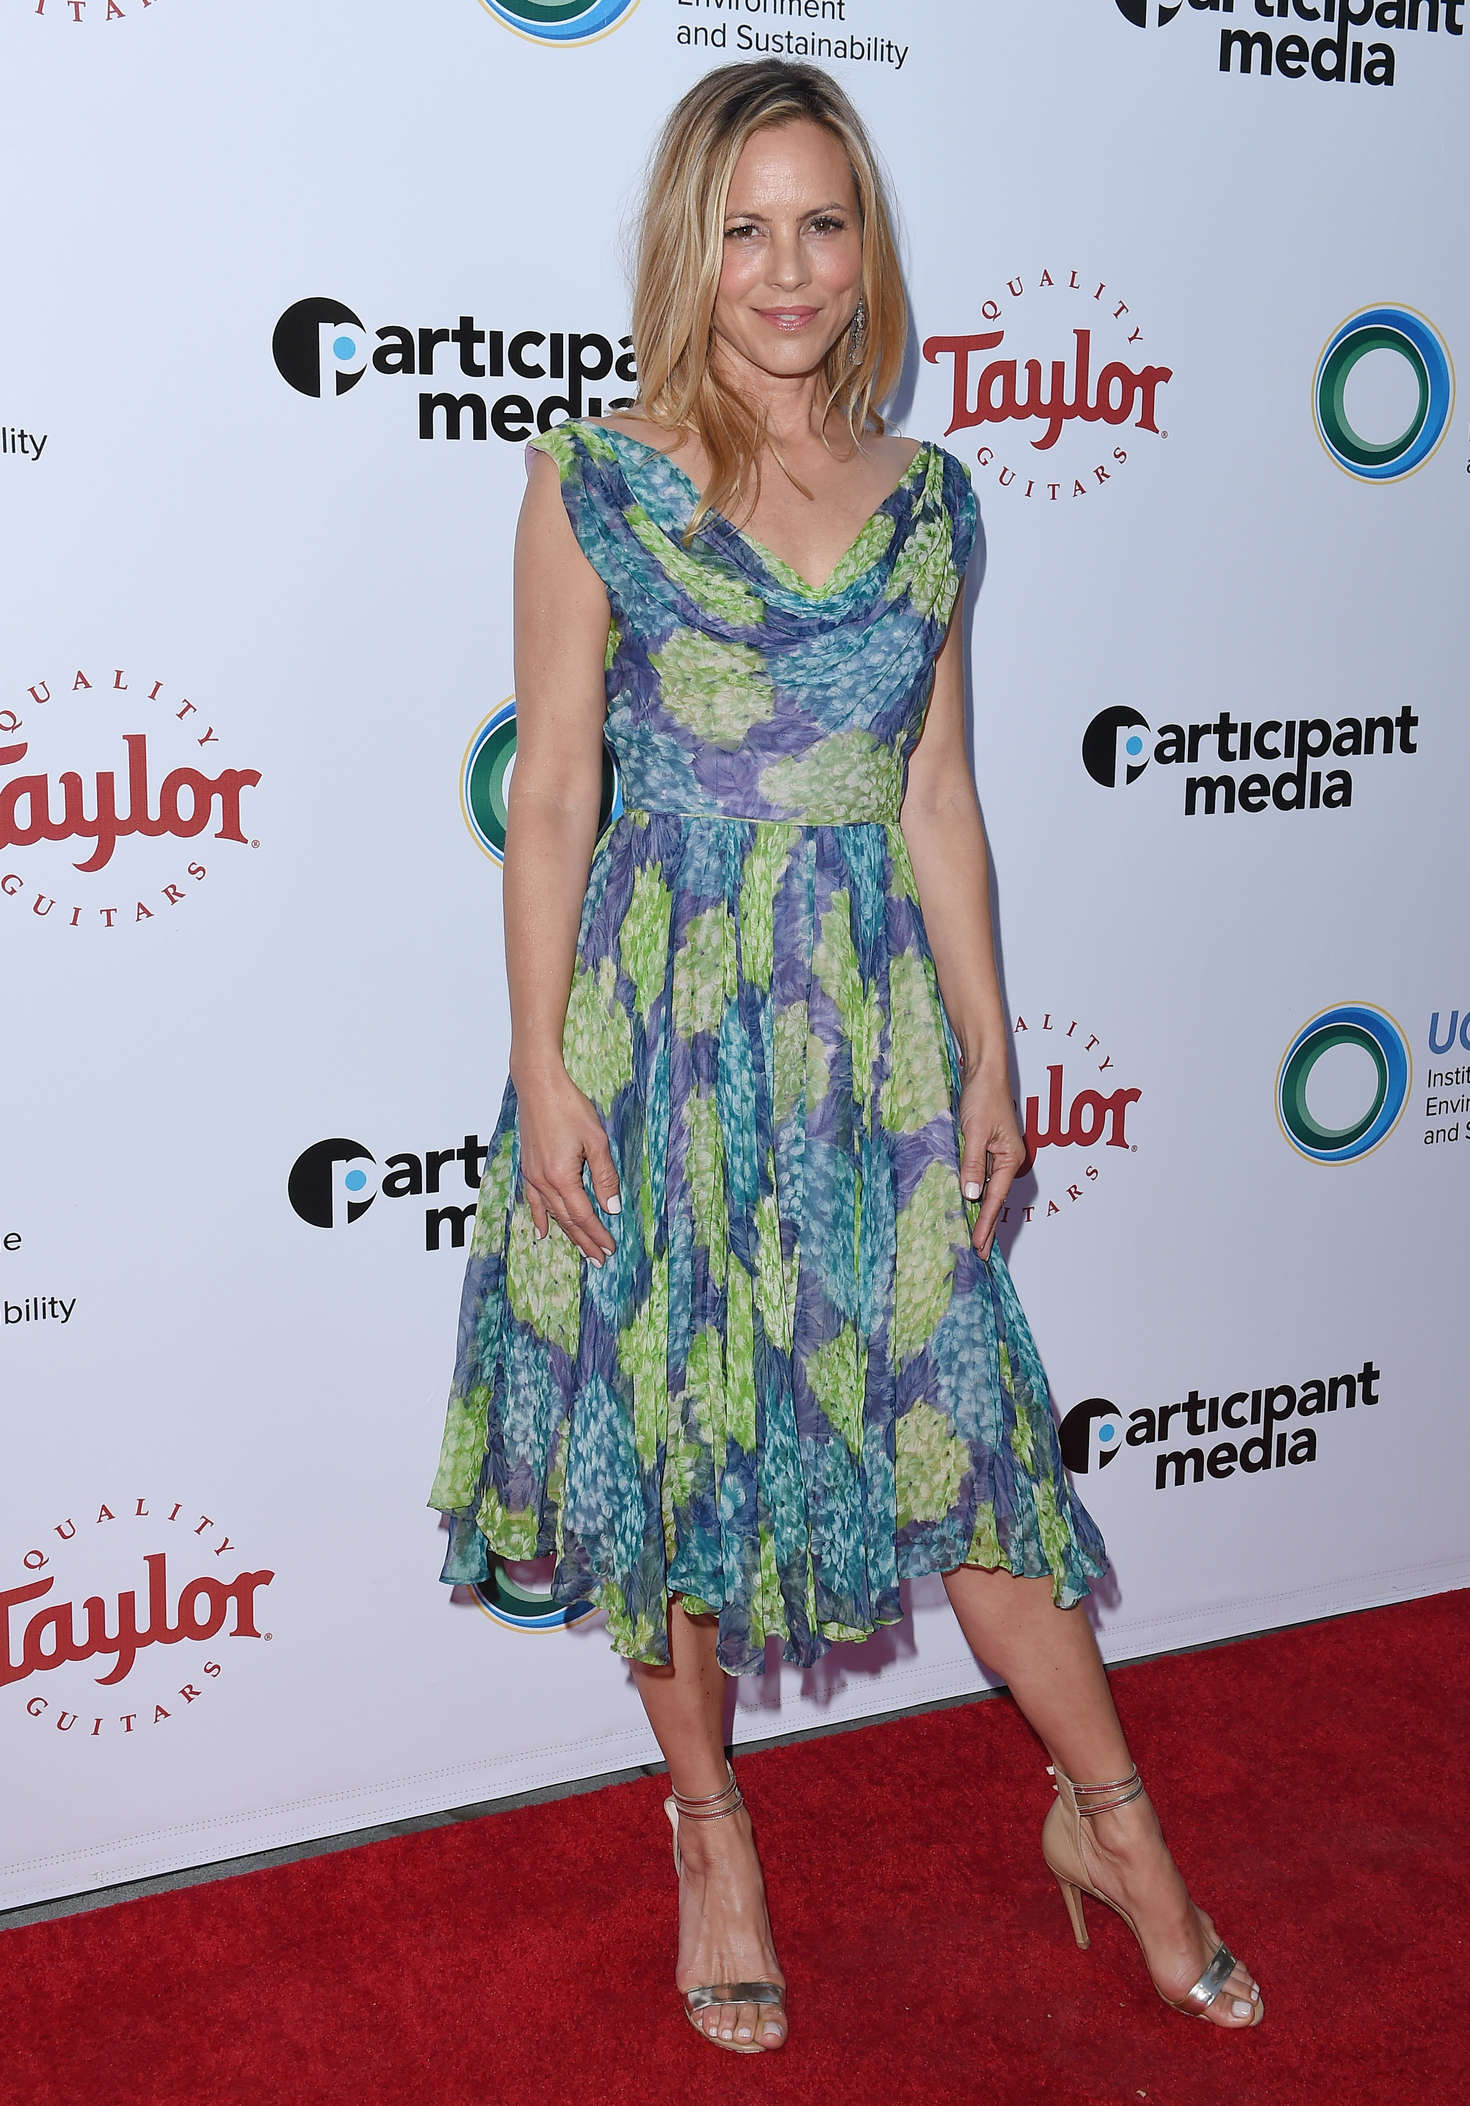 Maria Bello UCLA Institute of the Environment and Sustainability Gala in Beverly Hills